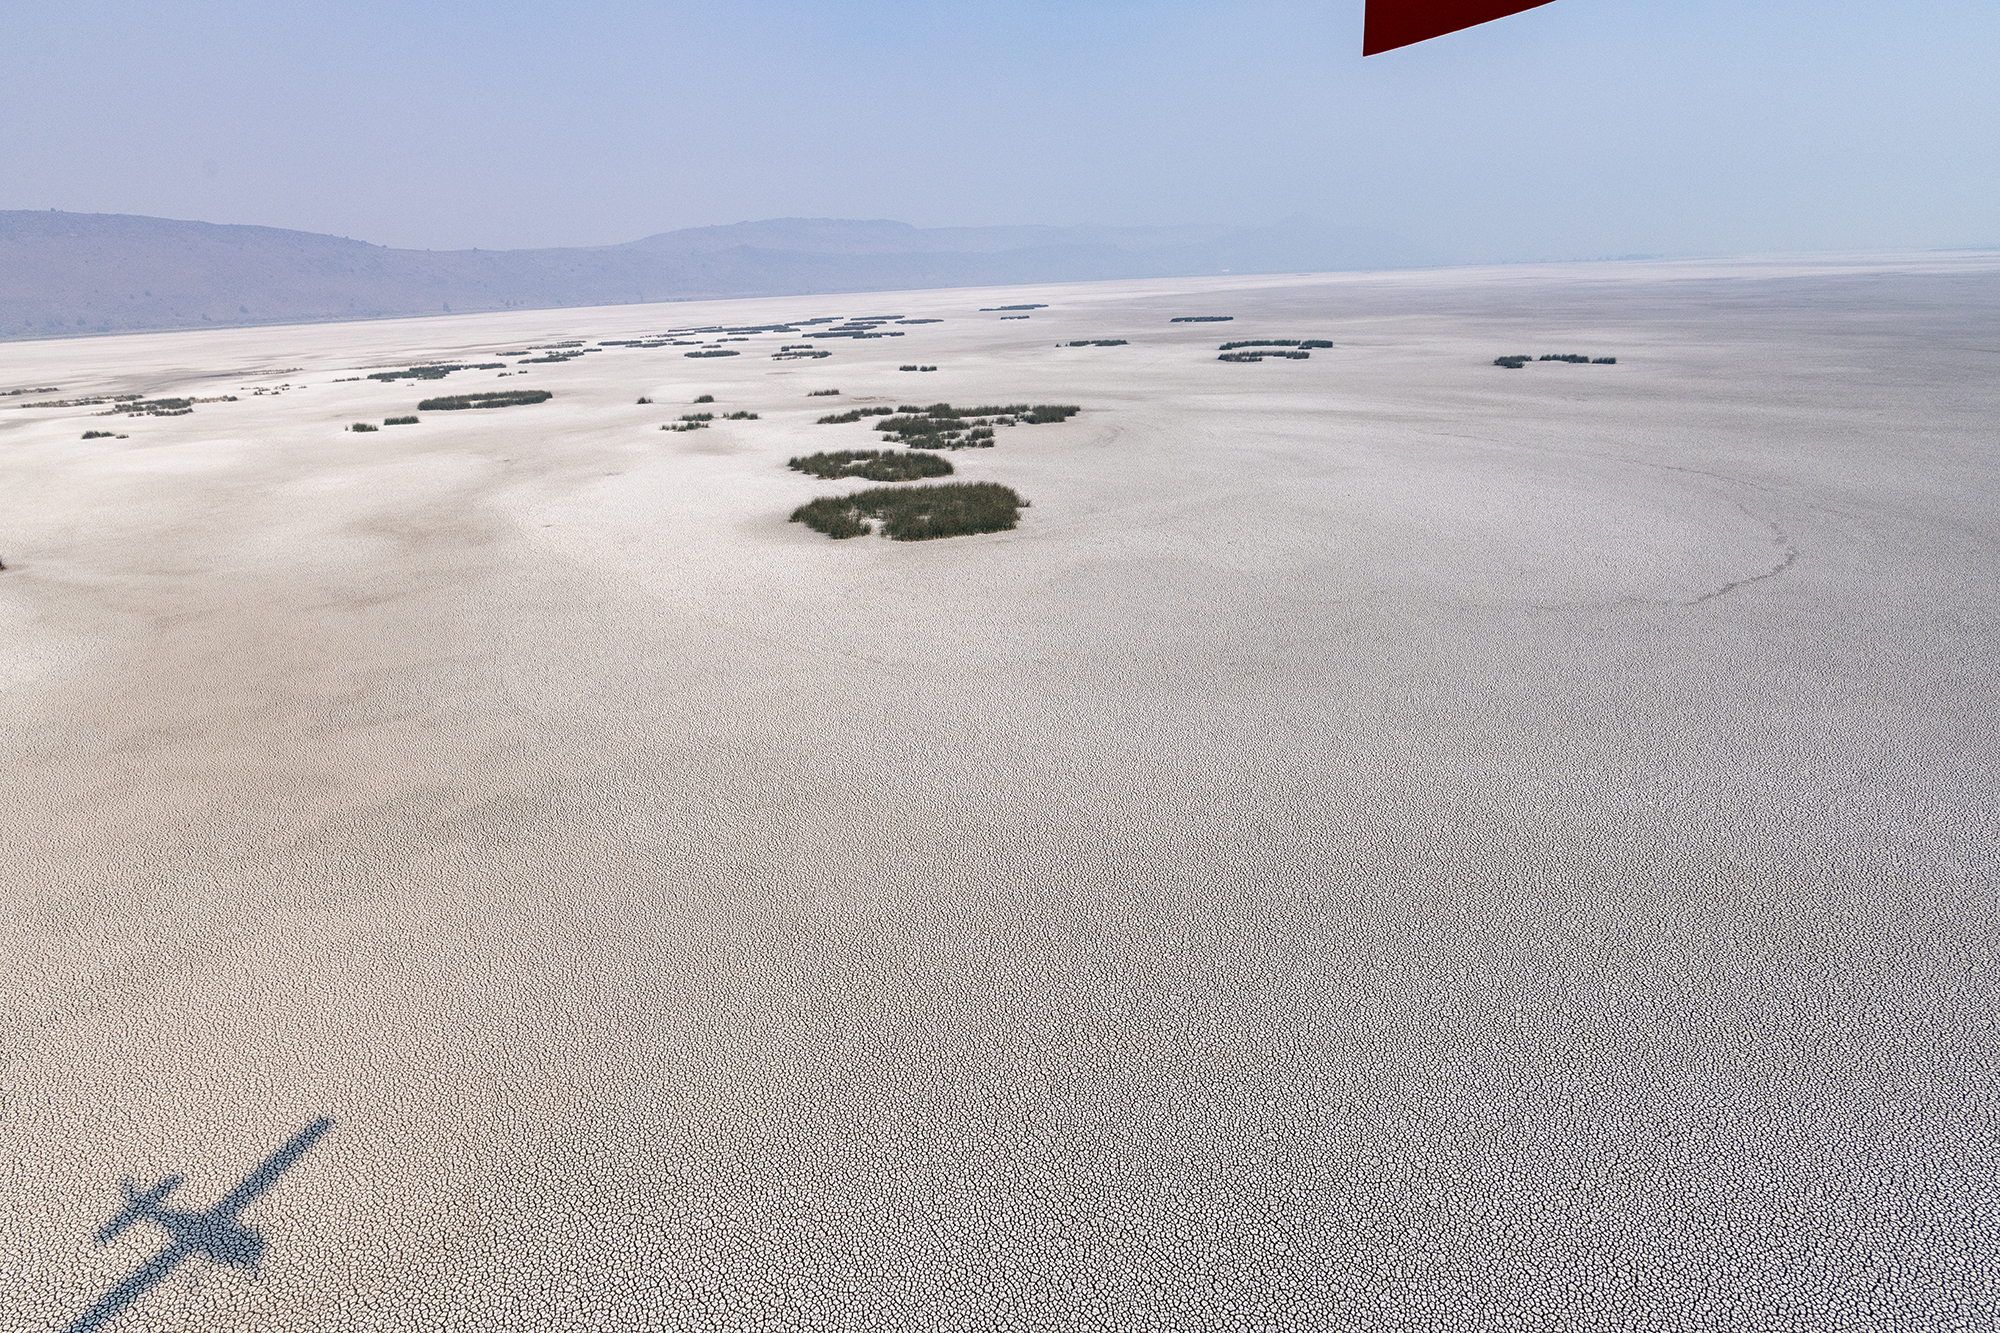 A thoroughly drained Sump 1A at the Tule Lake NWR